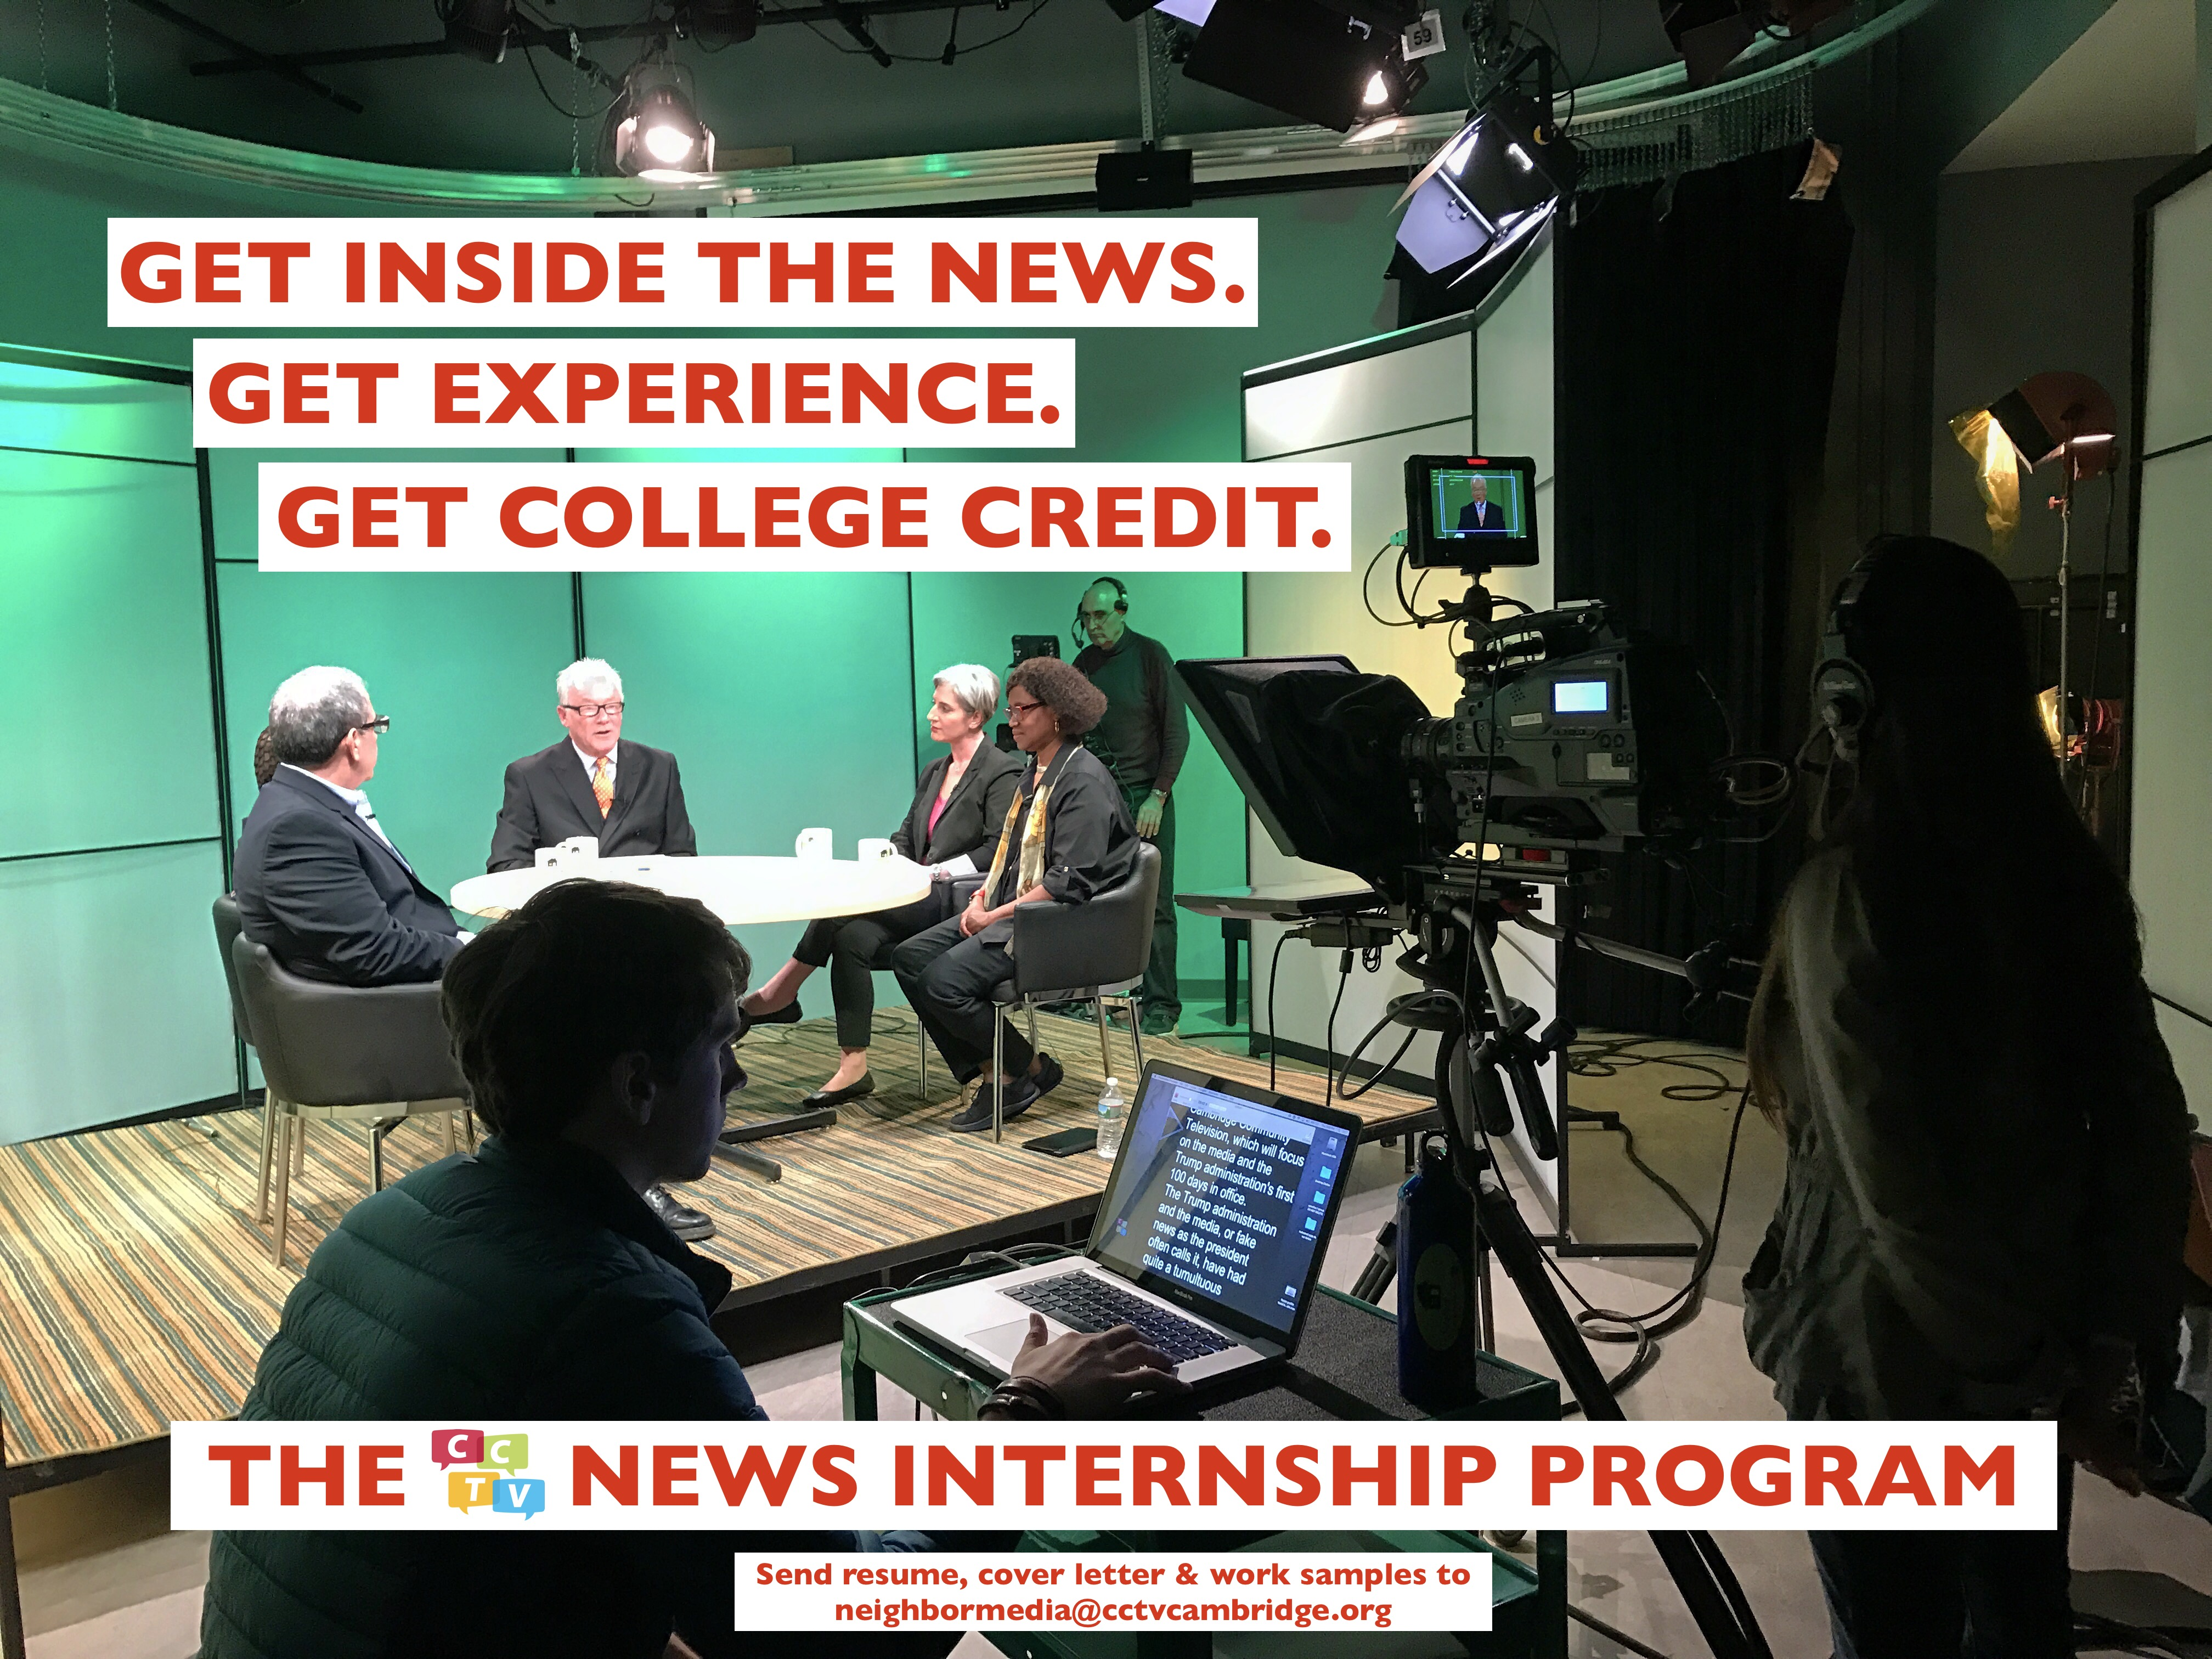 College Interns Wanted To Report Cambridge News